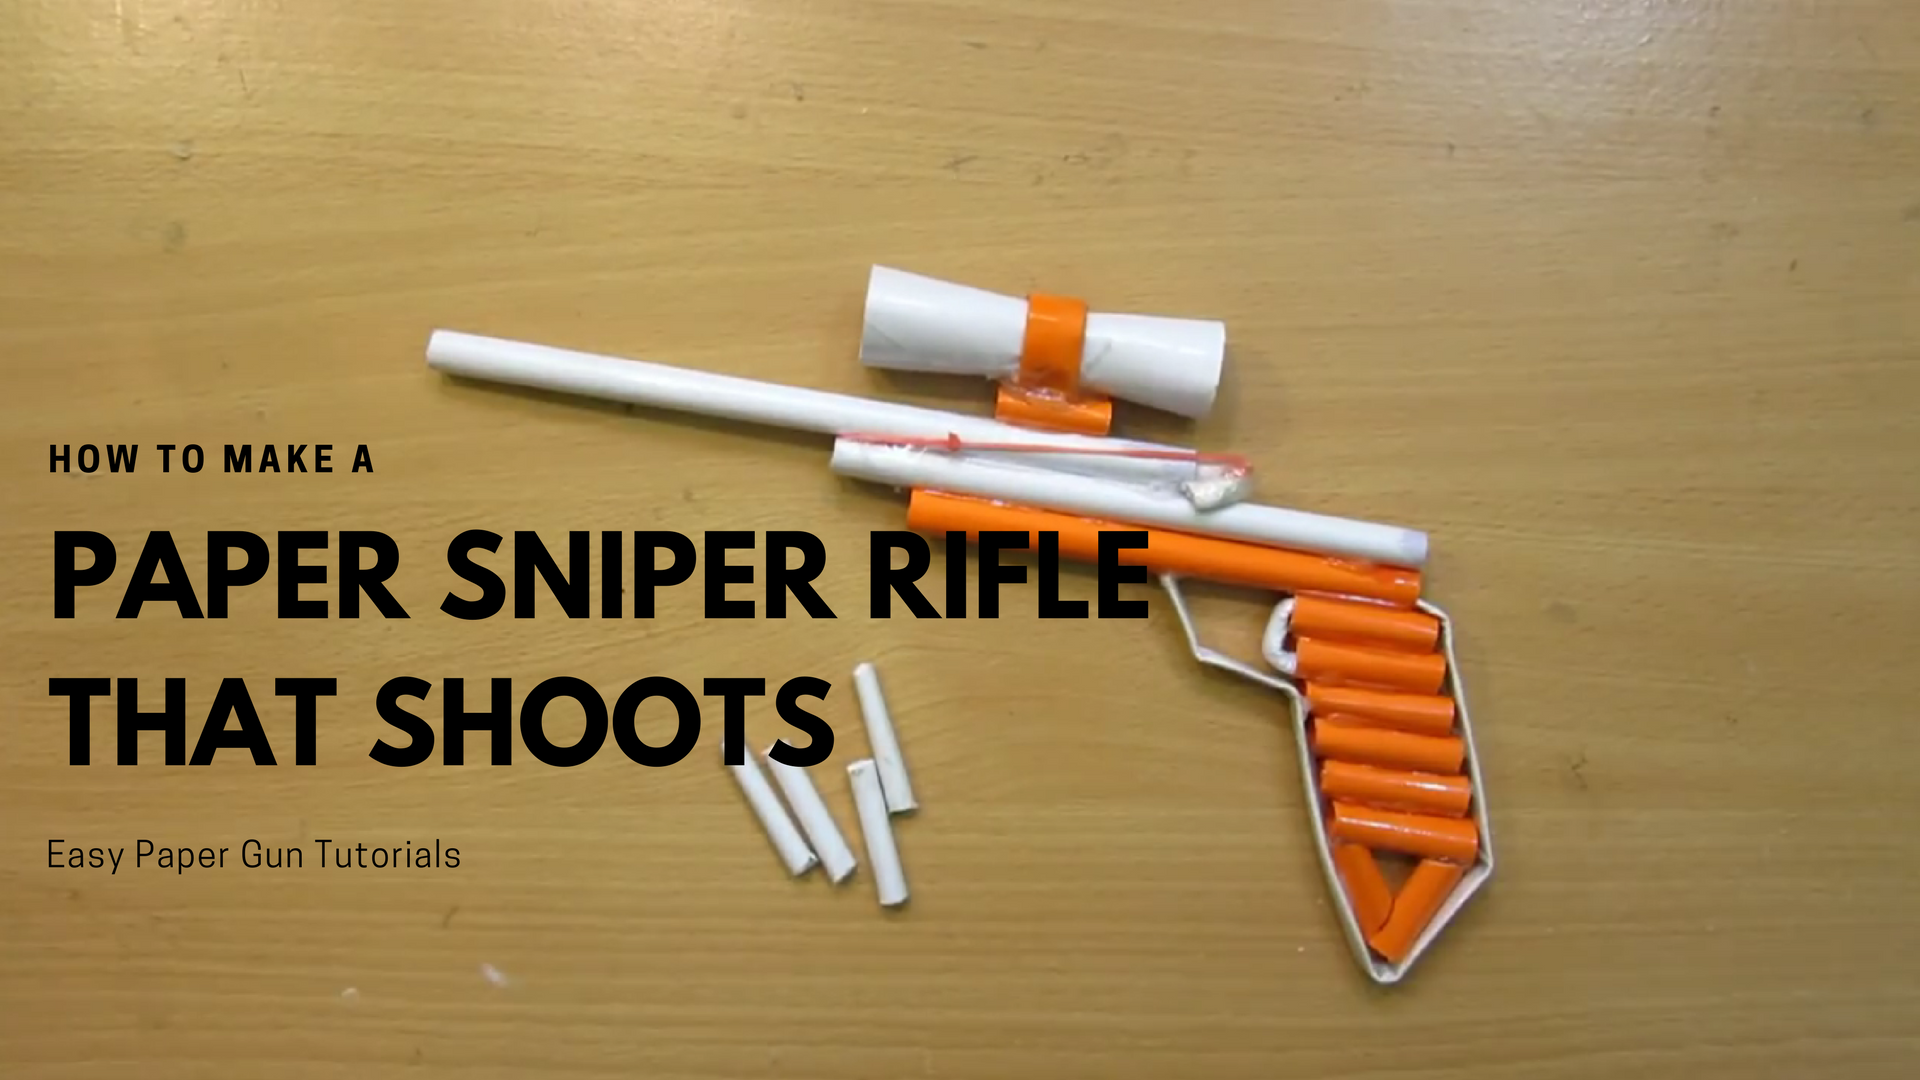 How to Make Paper Guns Step by Step VIDEO App for Android - APK Download | 1080x1920